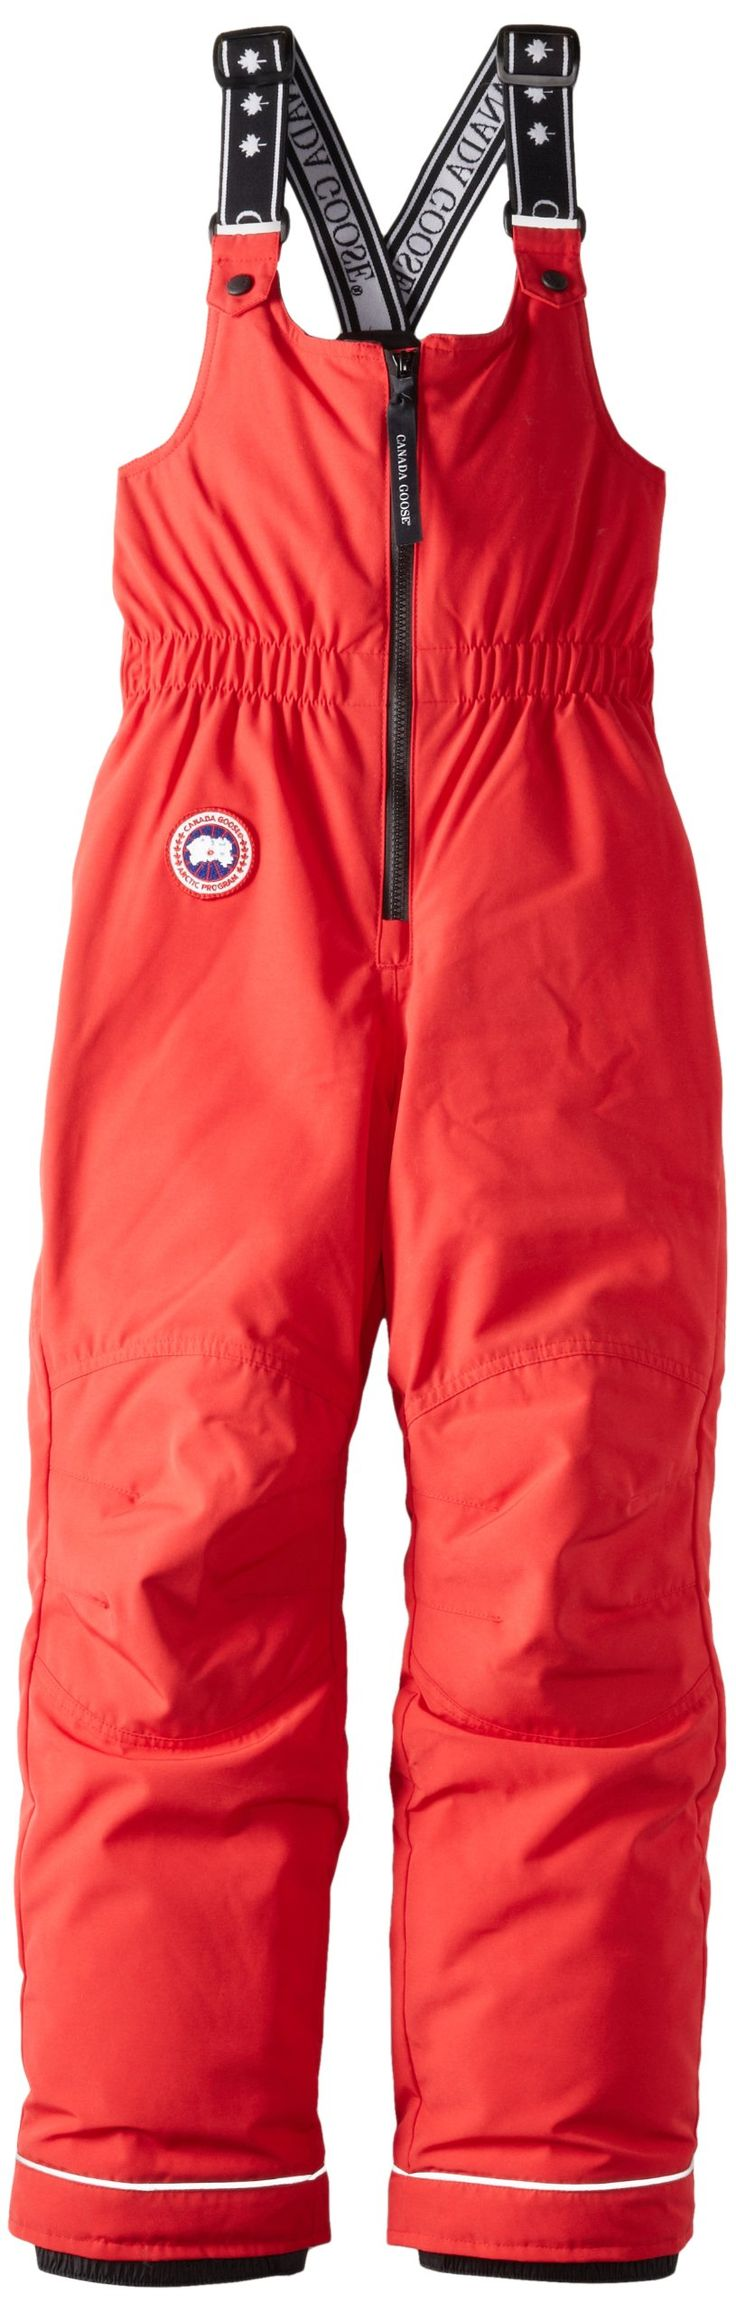 Canada Goose Youth Wolverine Pant, Red, Large